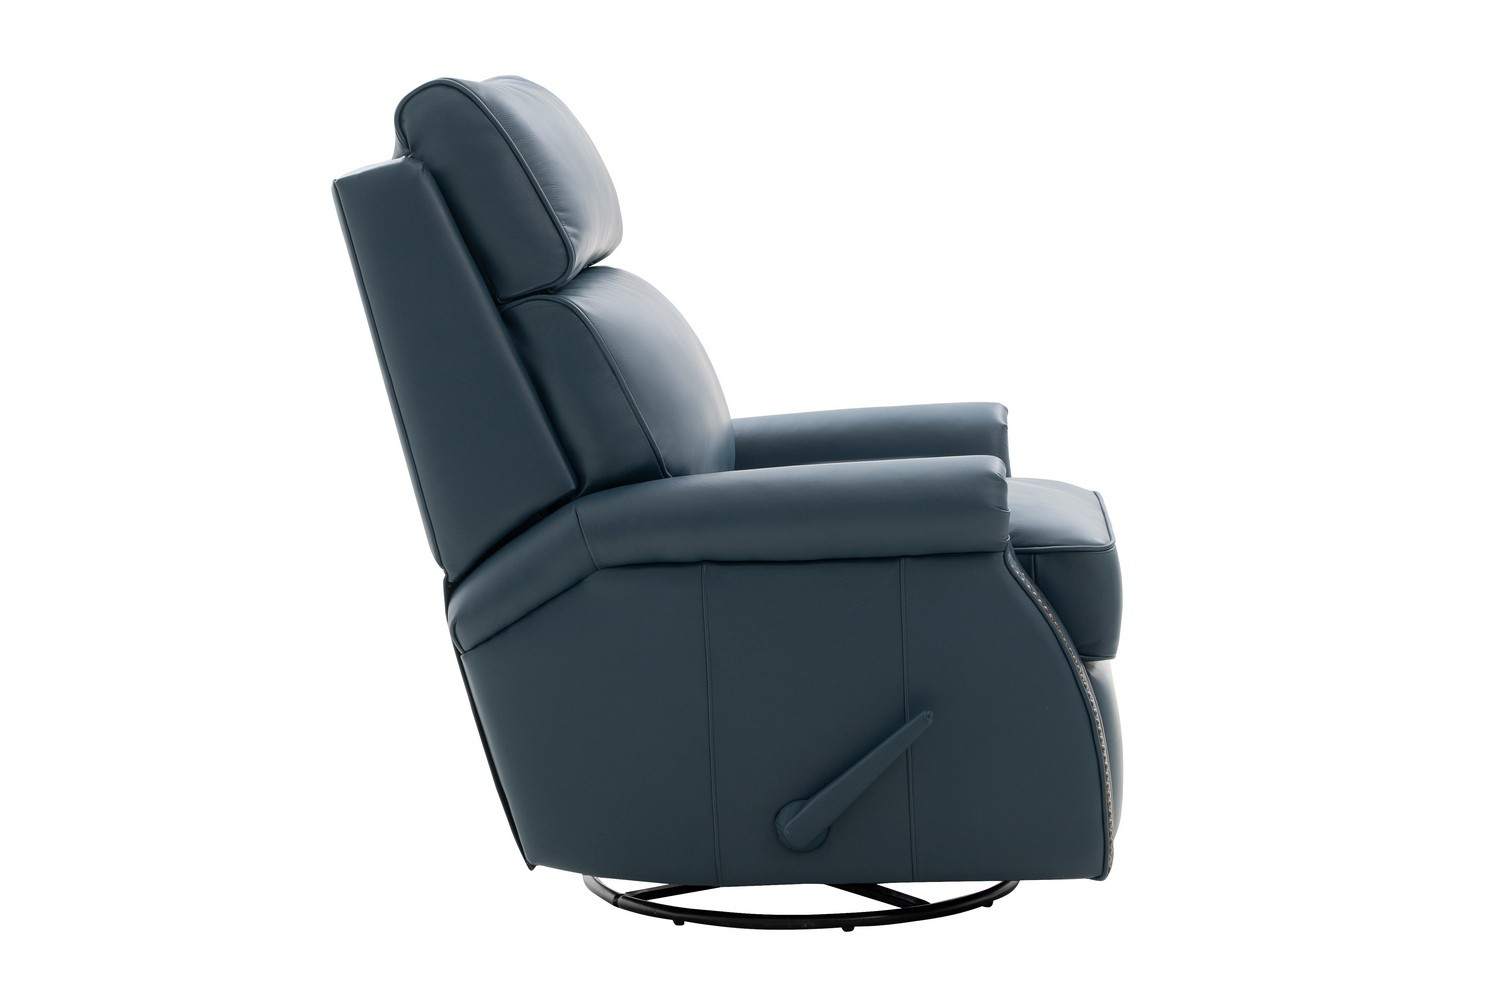 Barcalounger Crews Swivel Glider Recliner Chair - Prestin Yale Blue/All Leather